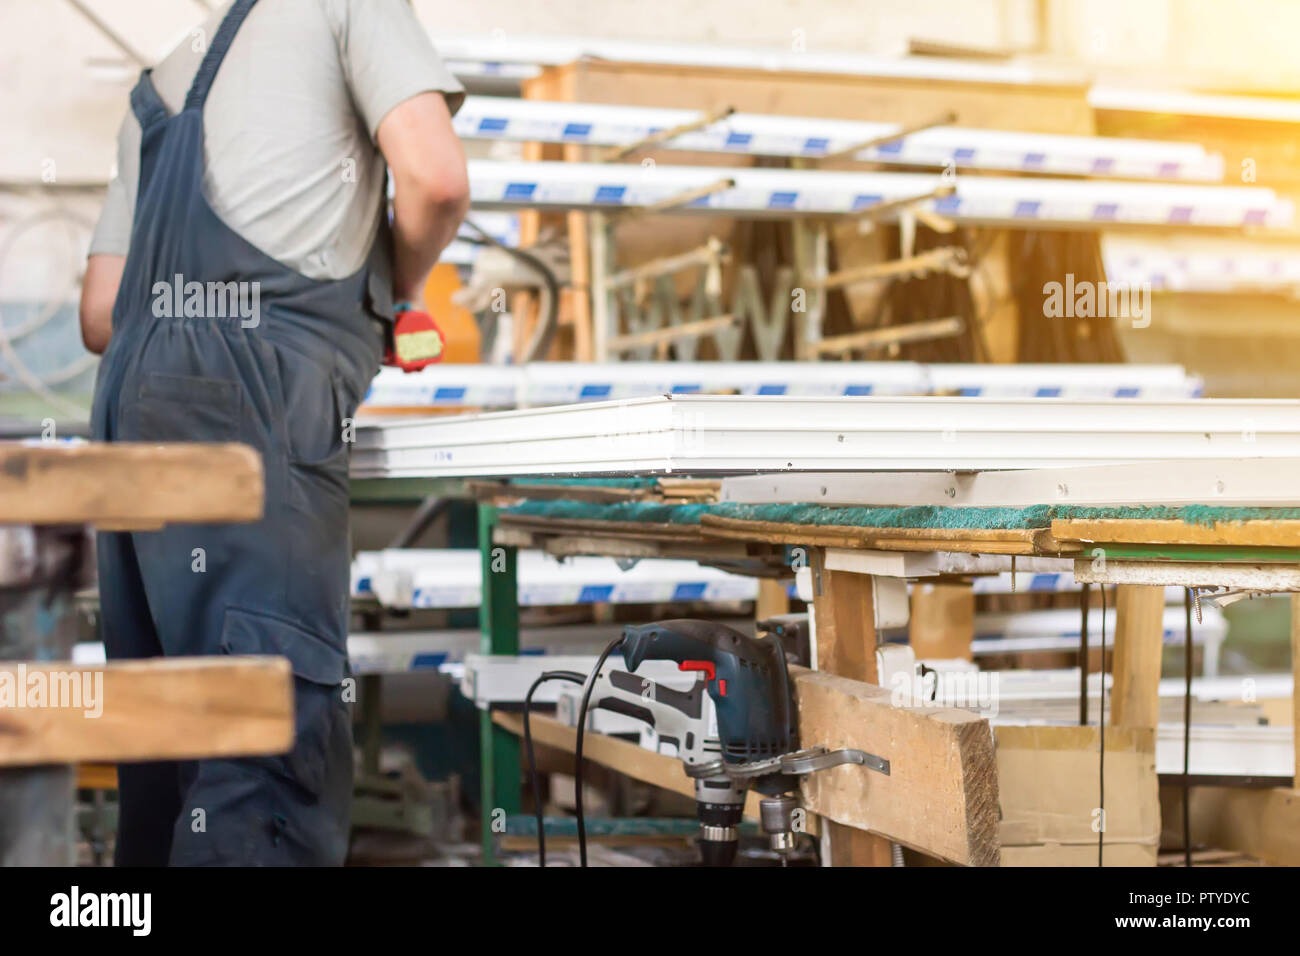 Production of pvc windows, a man collects a pvc window, a screwdriver, worker - Stock Image